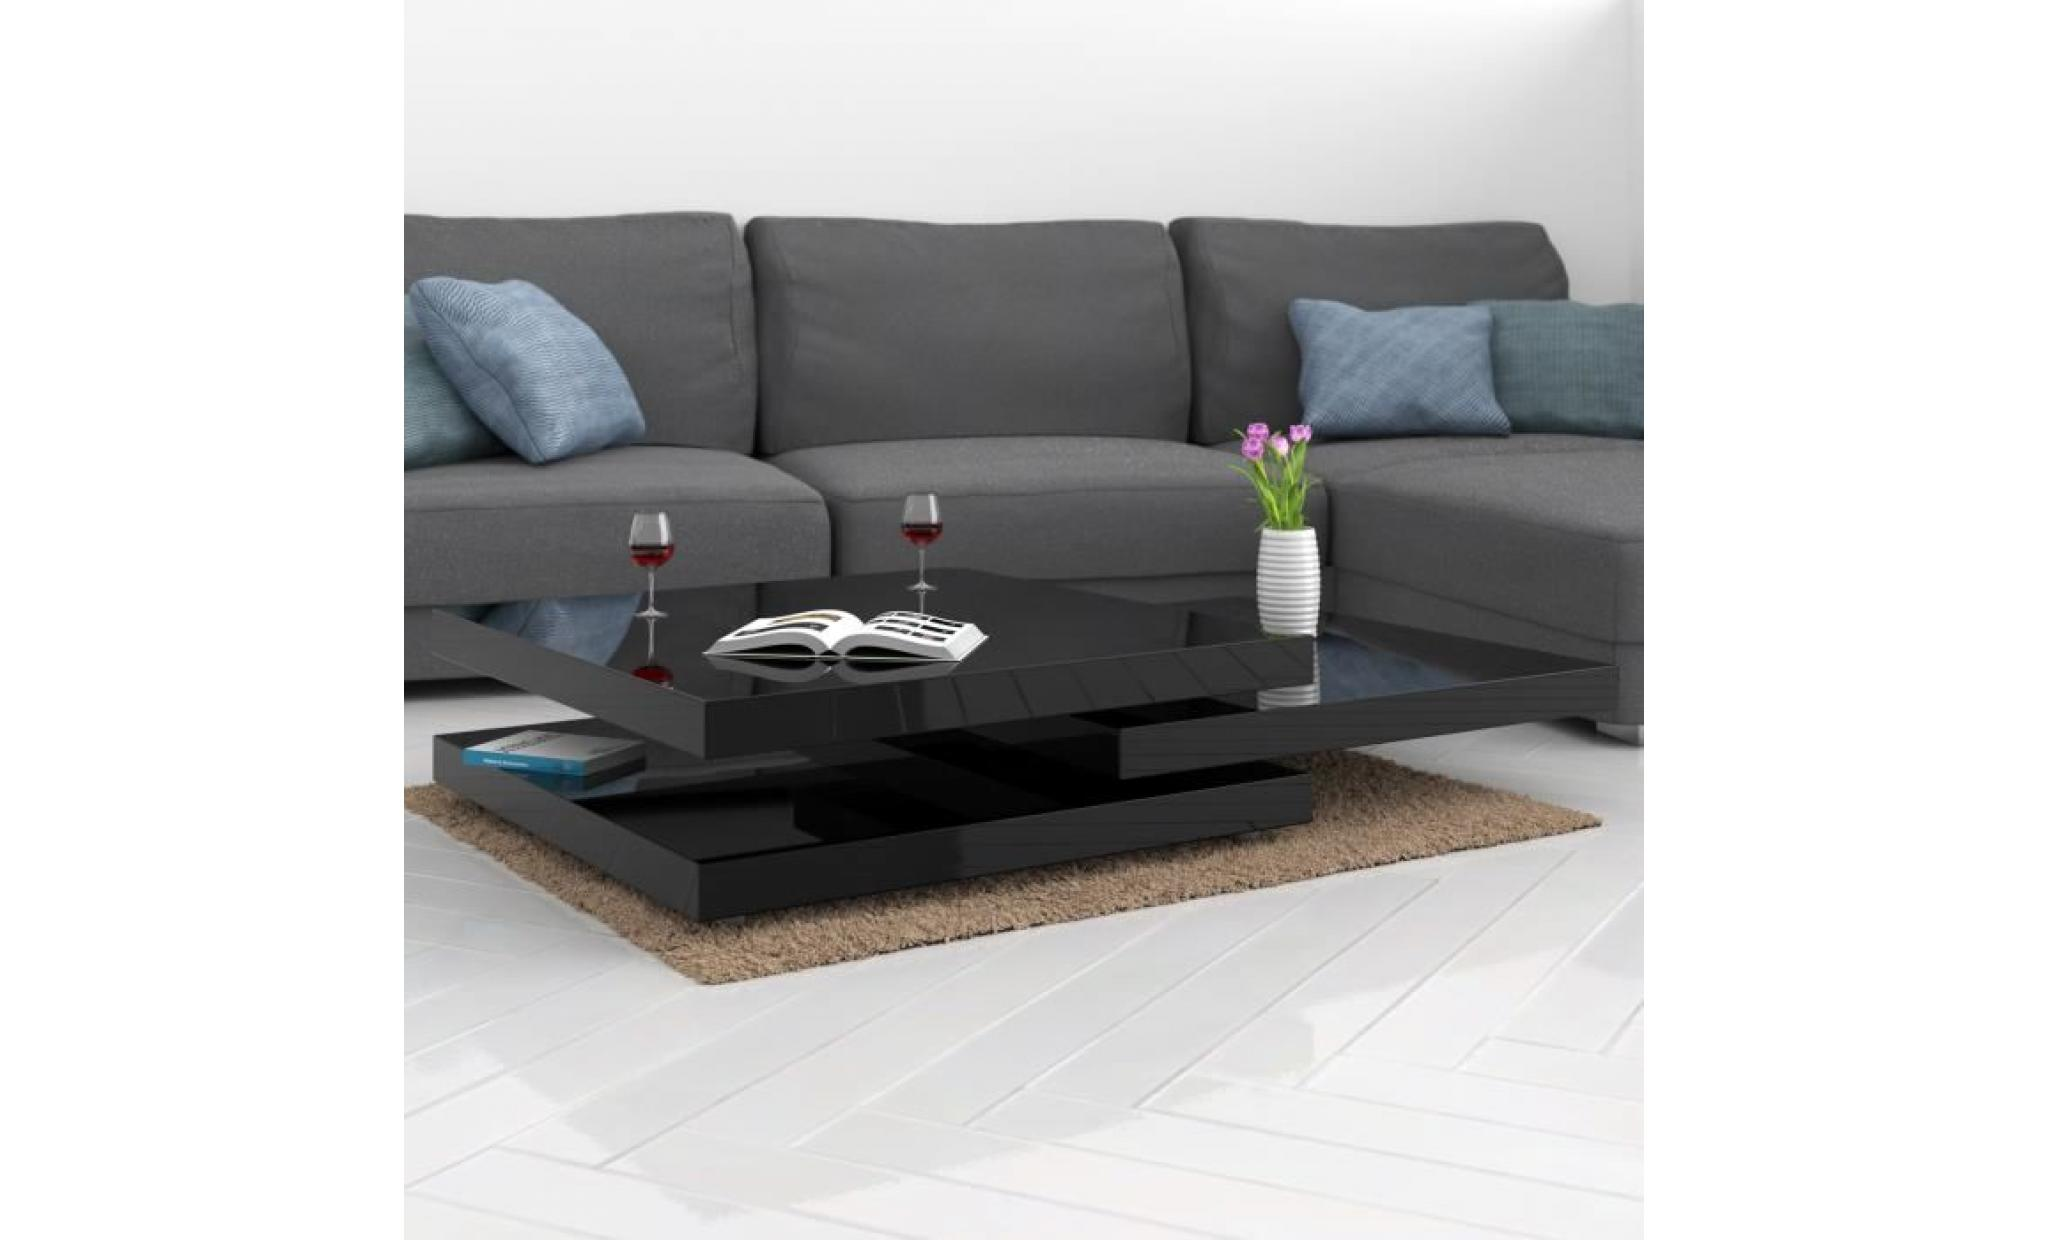 60x60cm Laquée Basse Intérieur Kg Noir Brillante À Moderne Table De Max20 Rotative 360° Charge Salon by7f6g